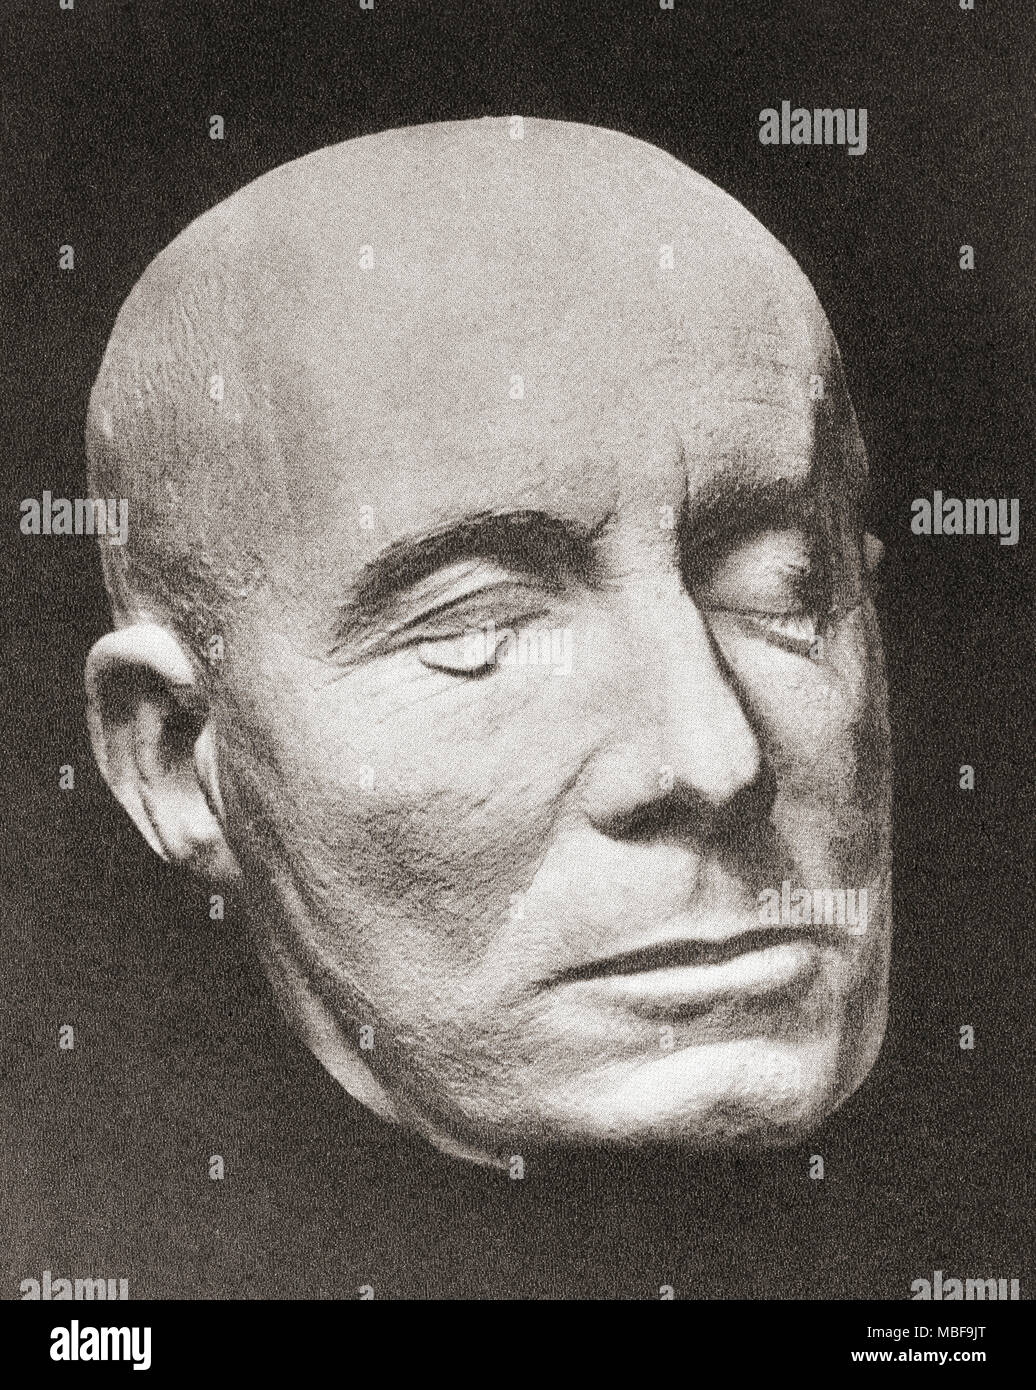 Rommel's death mask.  Erwin Rommel, aka Desert Fox,  1891 –1944.  German general, military theorist and field marshal in the Wehrmacht of Nazi Germany during World War II. - Stock Image